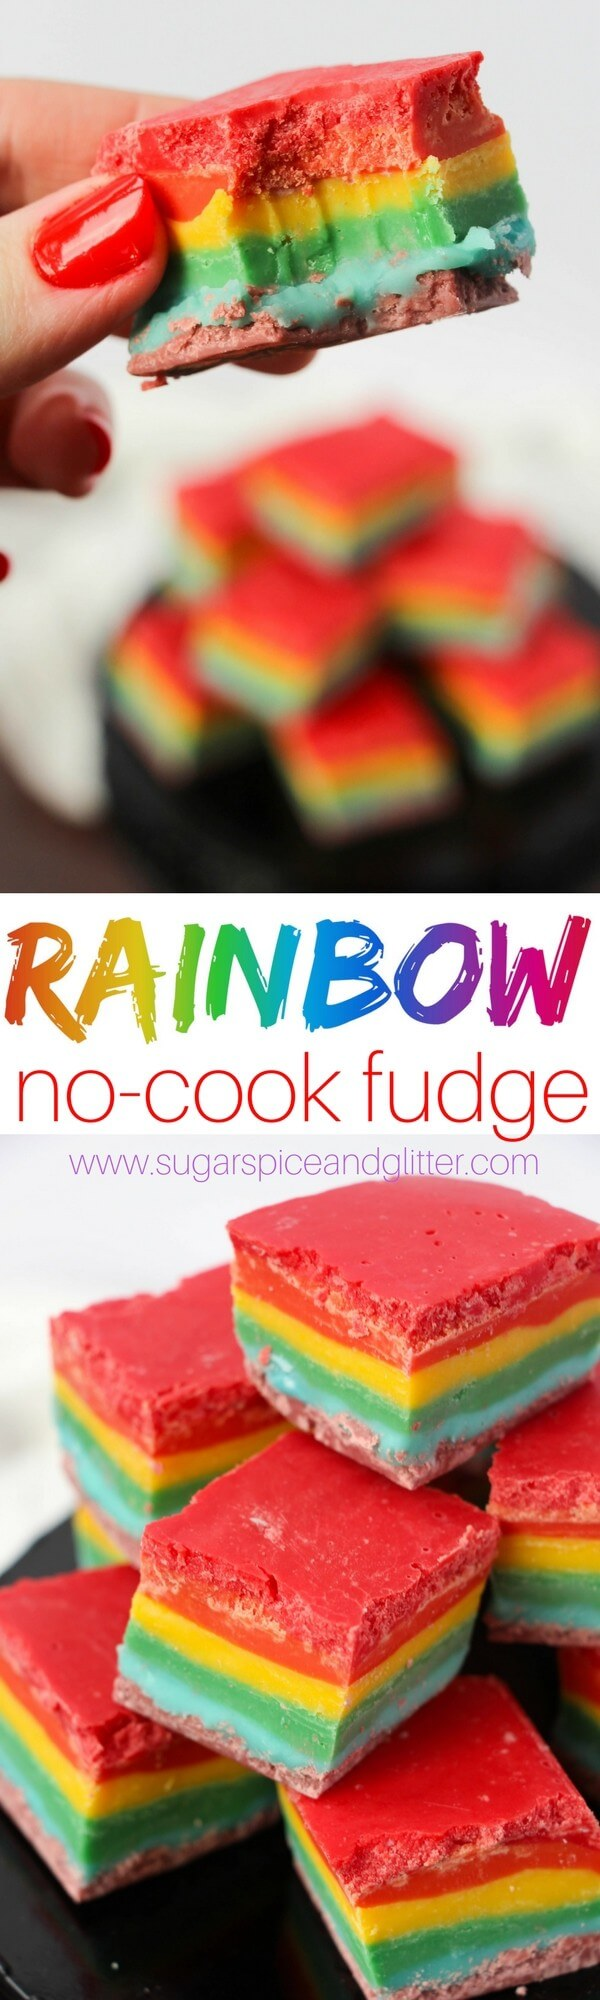 Sweet and colorful Rainbow No-Cook Fudge recipe perfect for a unicorn party, rainbow party or as a fun dessert at a baby shower for a rainbow baby. So easy the kids can help make it.